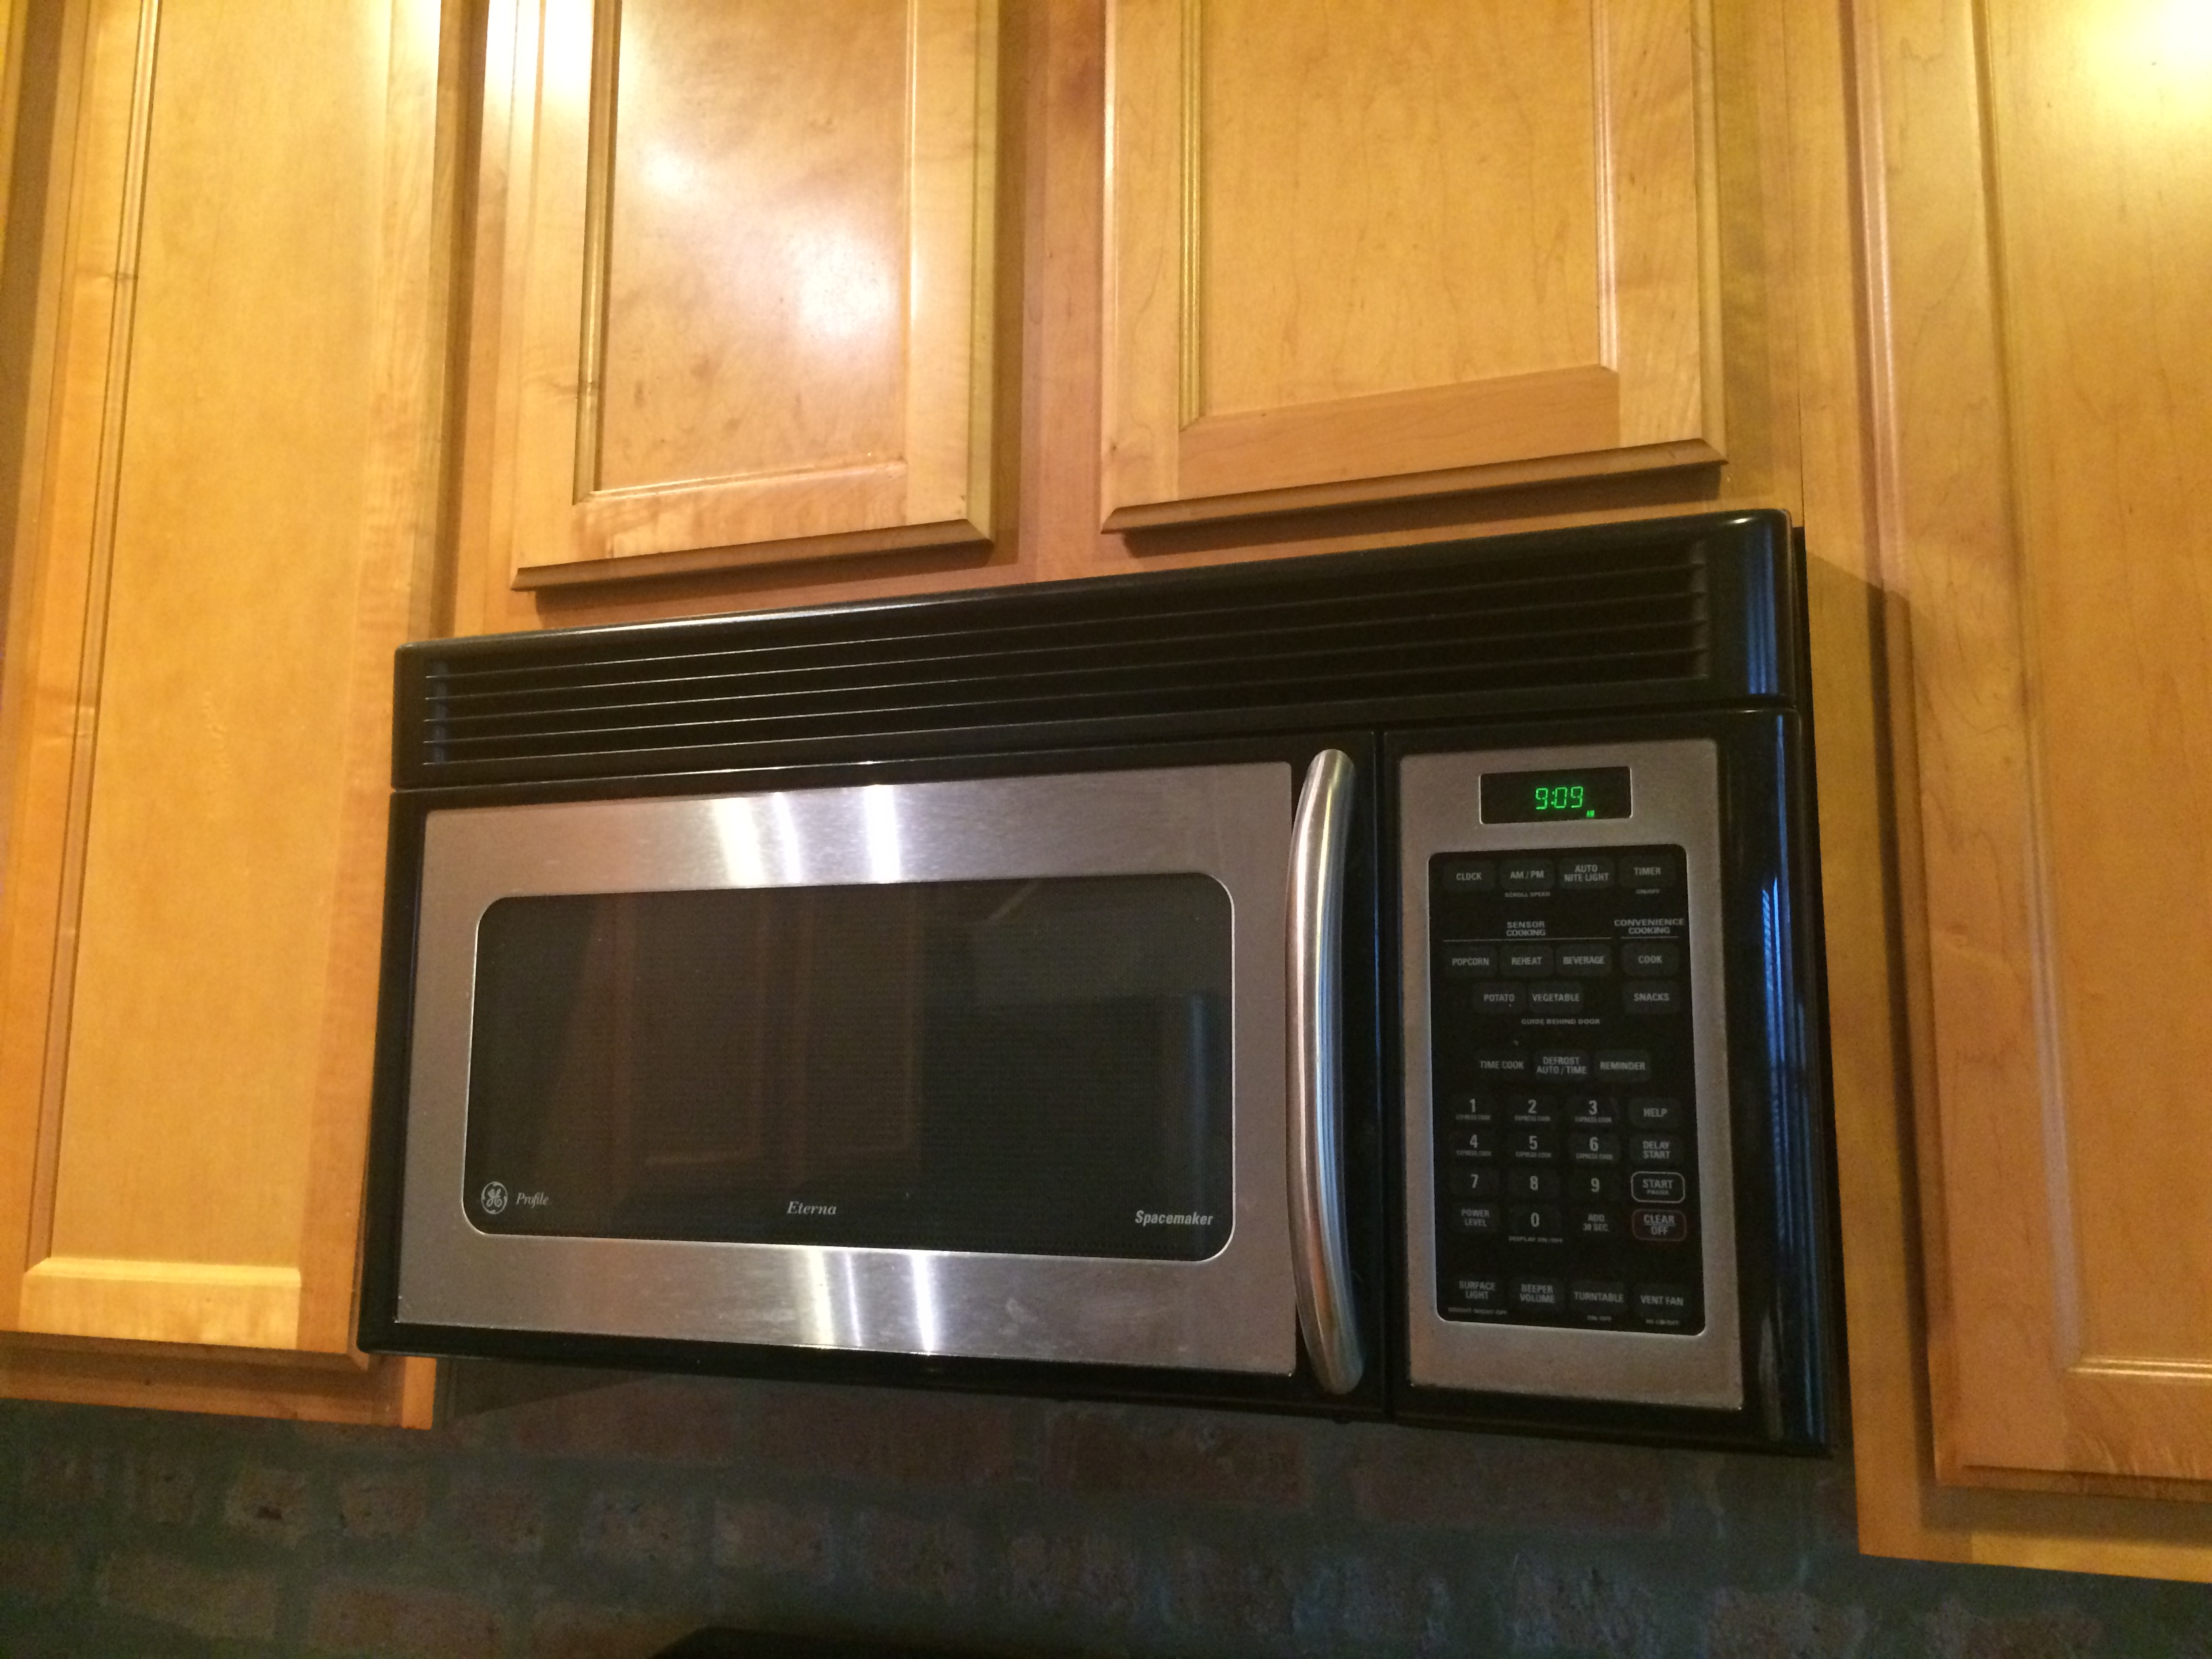 3 Reasons Why You May Want to Consider Not Using the Microwave